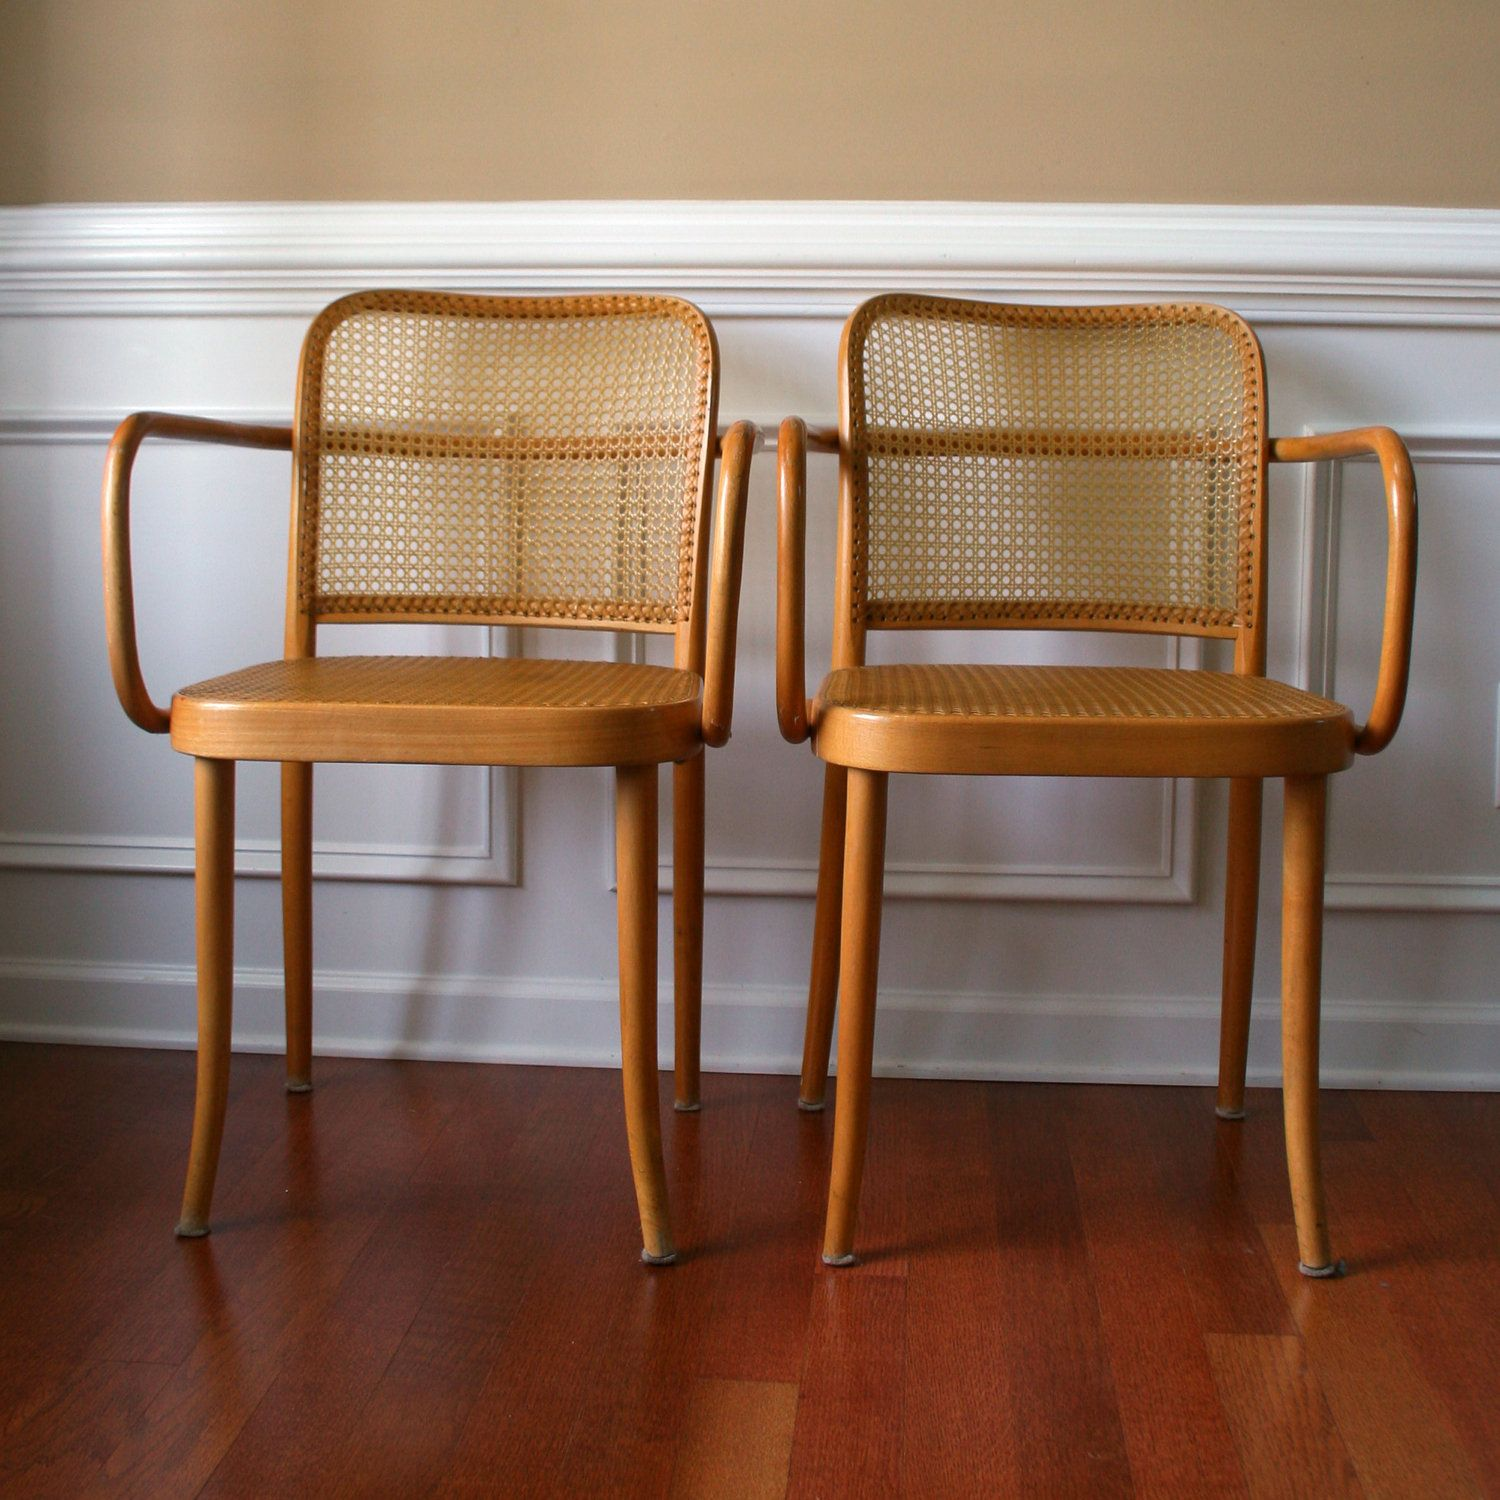 Beautiful Thonet Bentwood Chairs. Prague Chair. Stendig Chairs. Cane Chairs. Mad Men.  Mid Century Modern. Fathers Day Gift.. $495.00, Via Etsy.